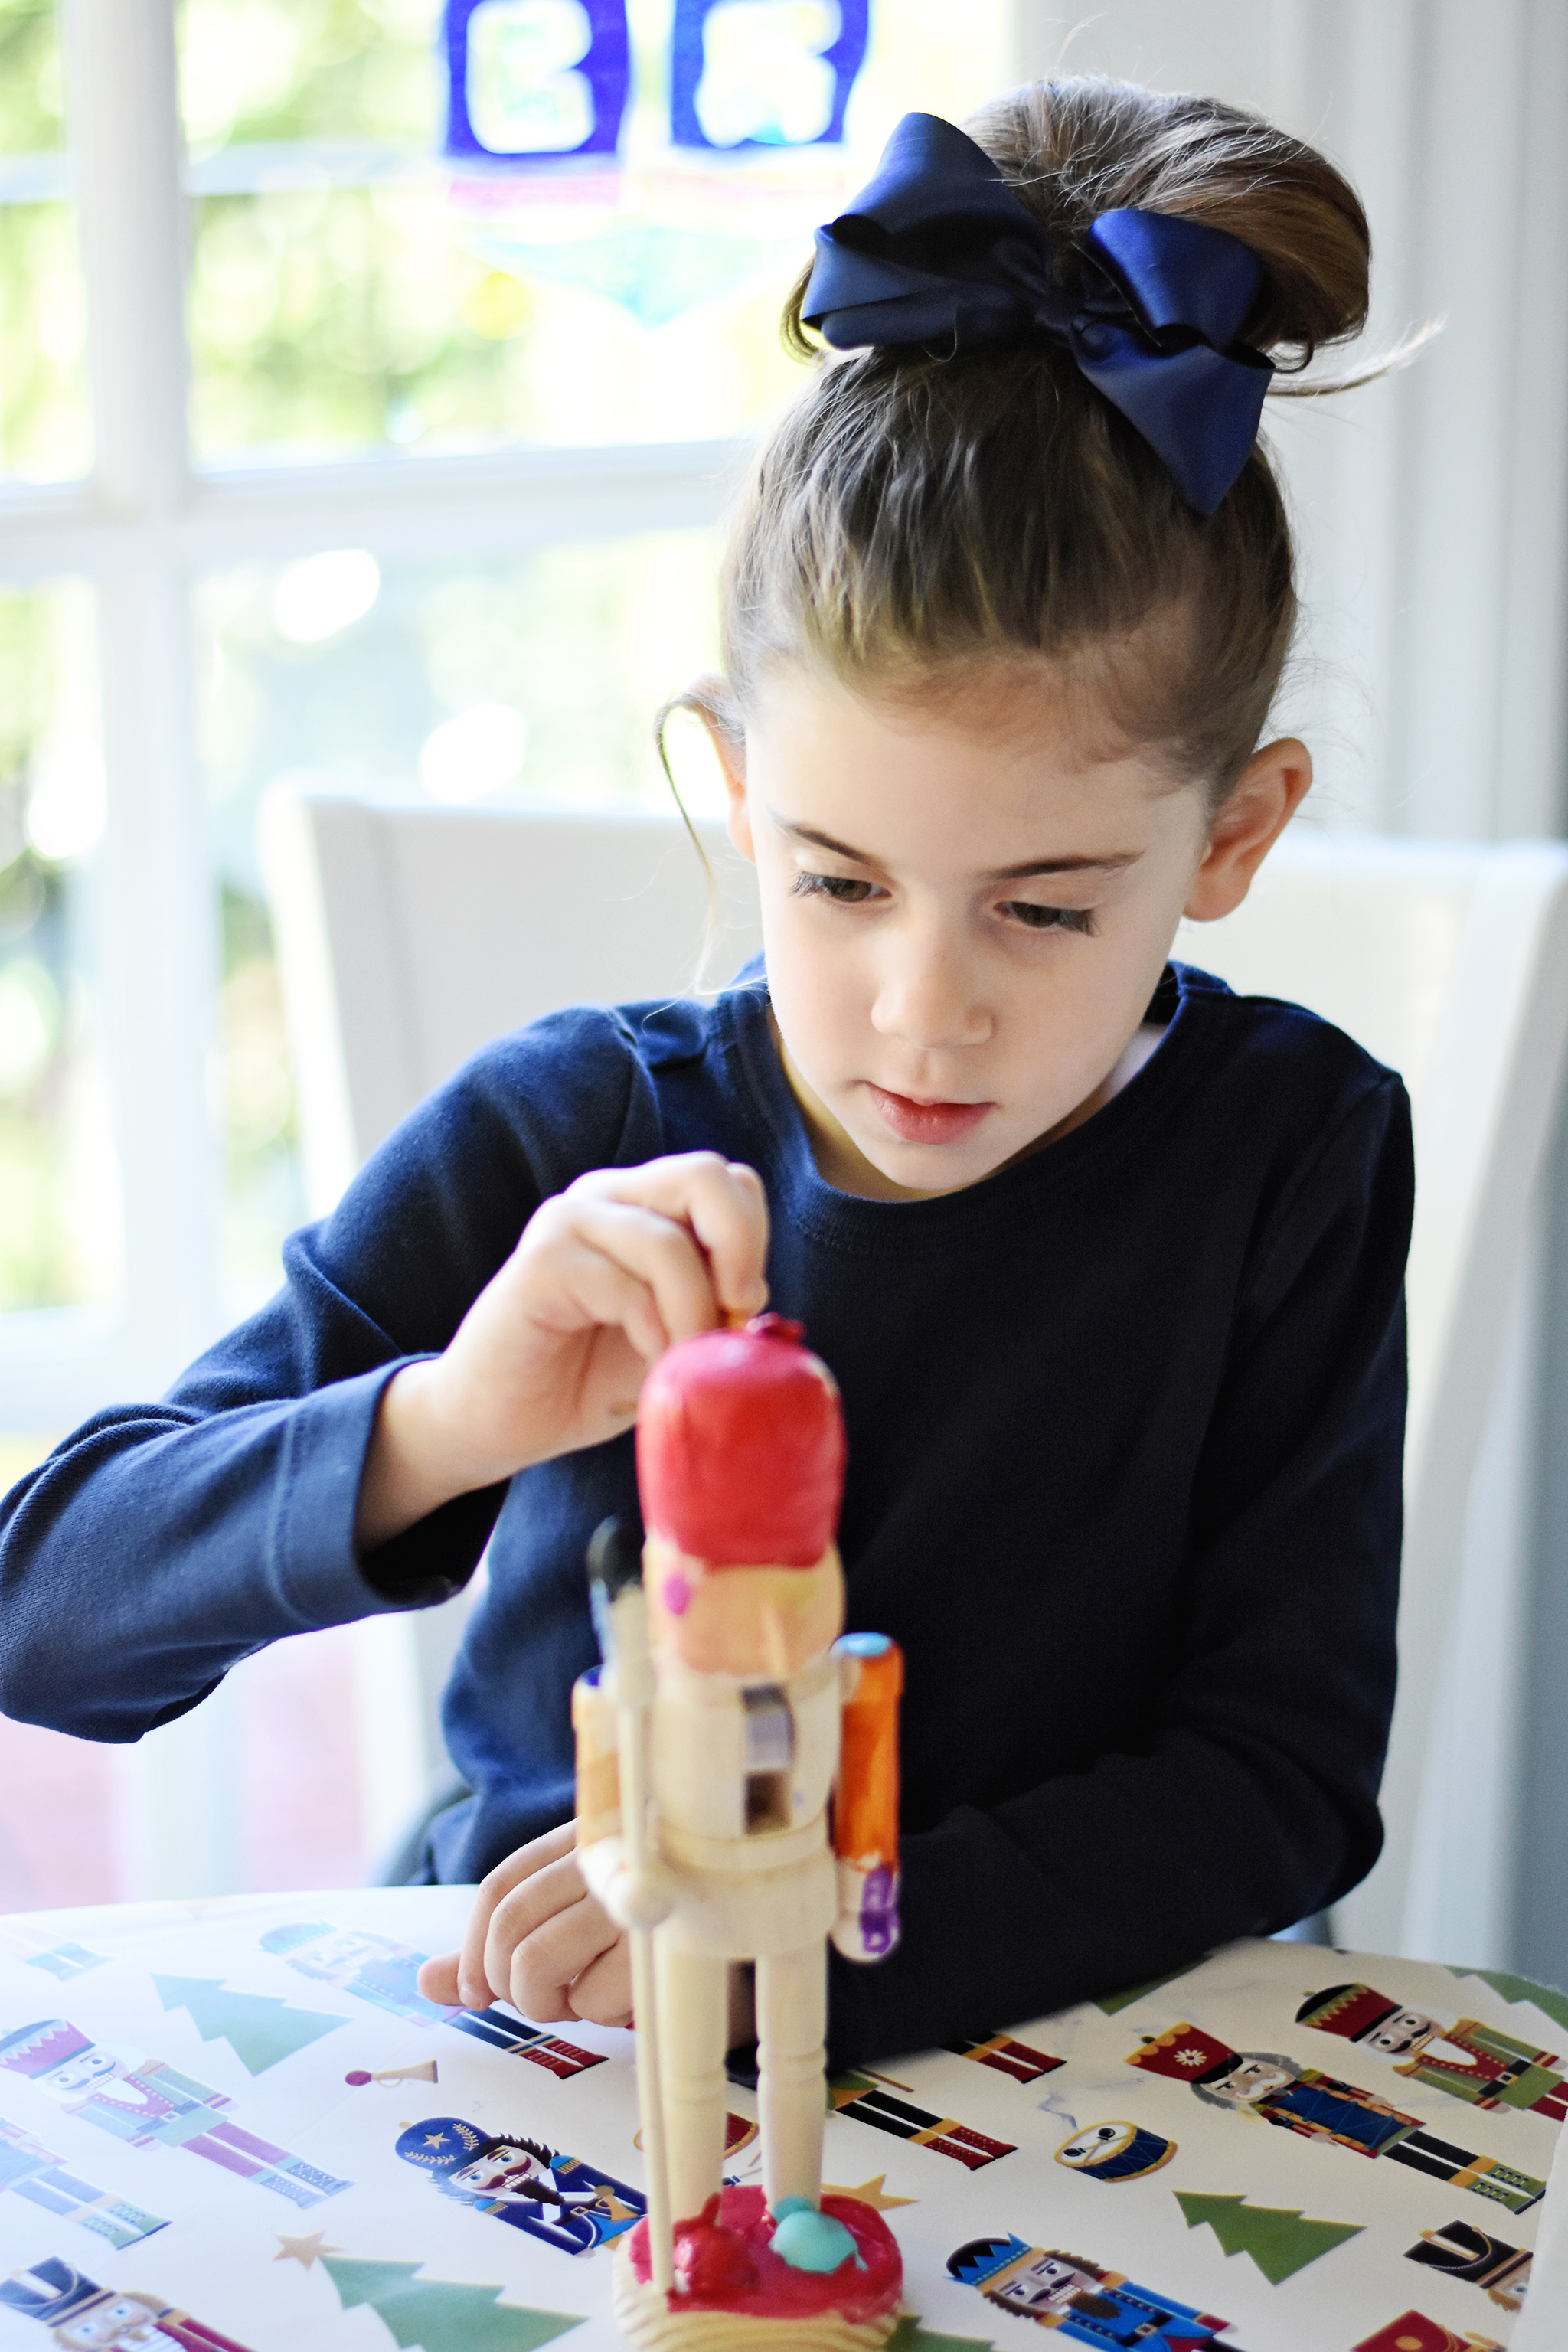 Kids will love designing their own nutcrackers!